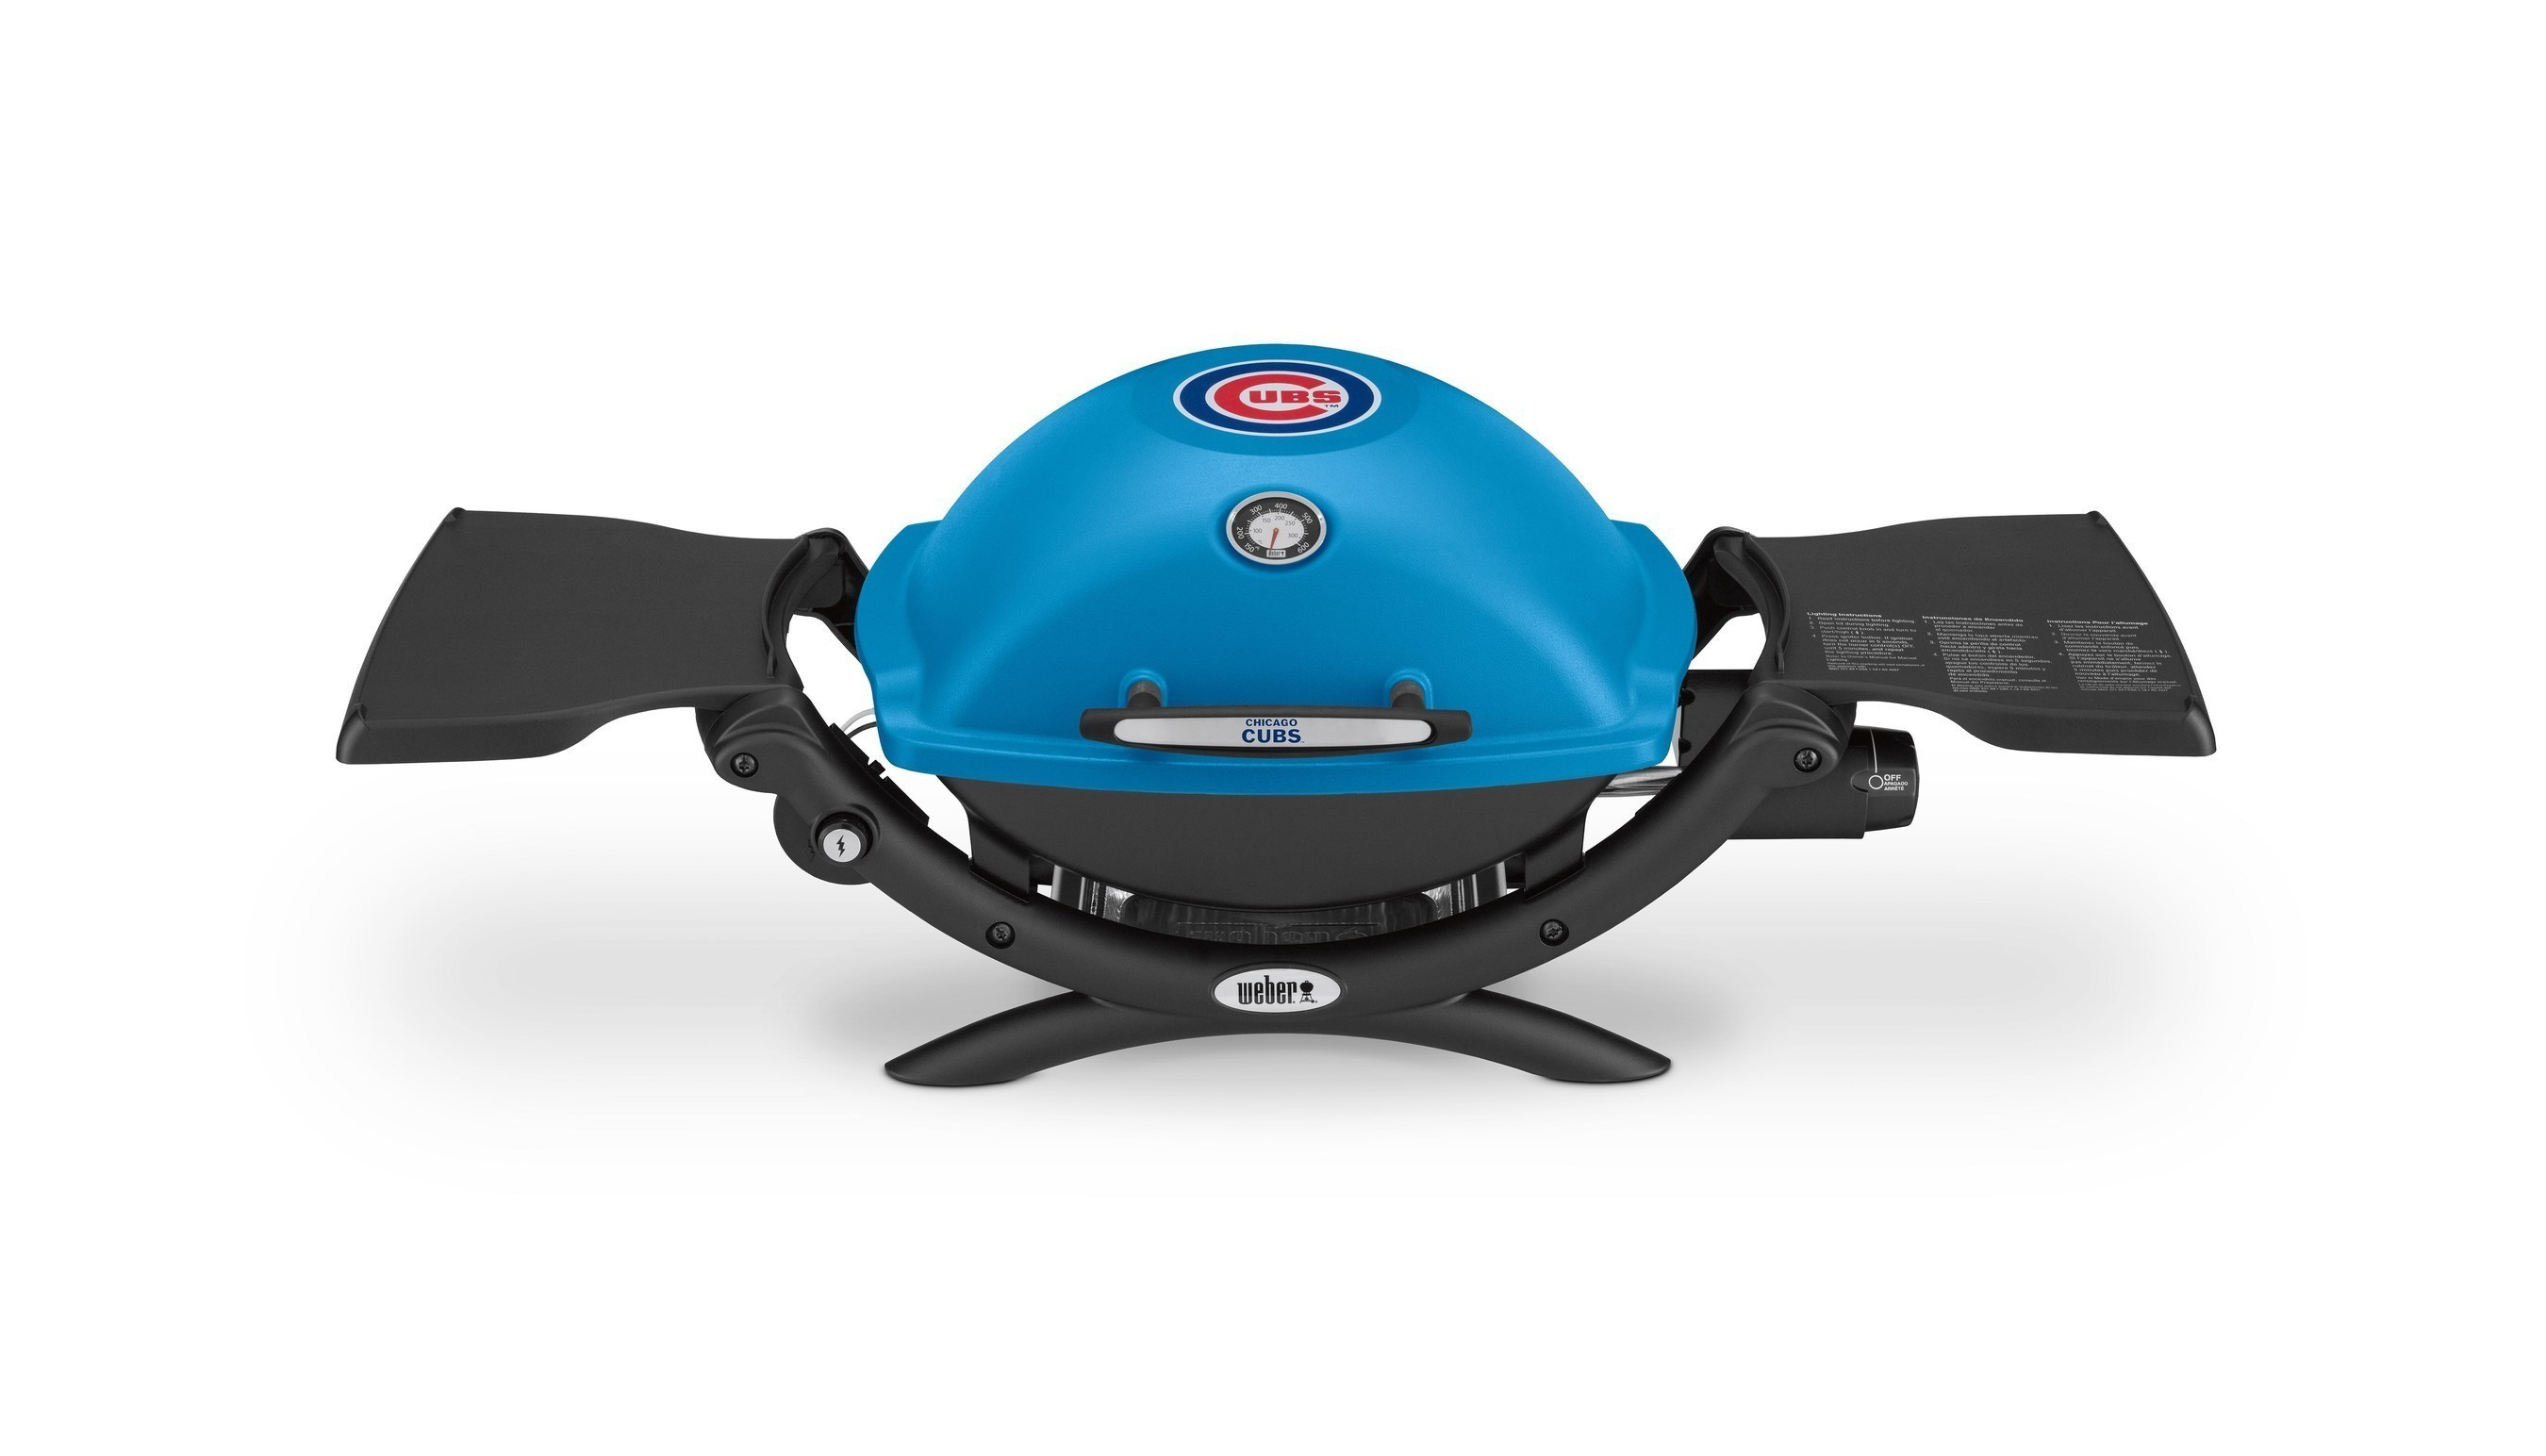 Chicago Cubs fans now have a new way to combine two of America's favorite pastimes with this first-ever official Cubs-branded gas grill.  The Weber Q Cubs grill is available at www.weber.com.